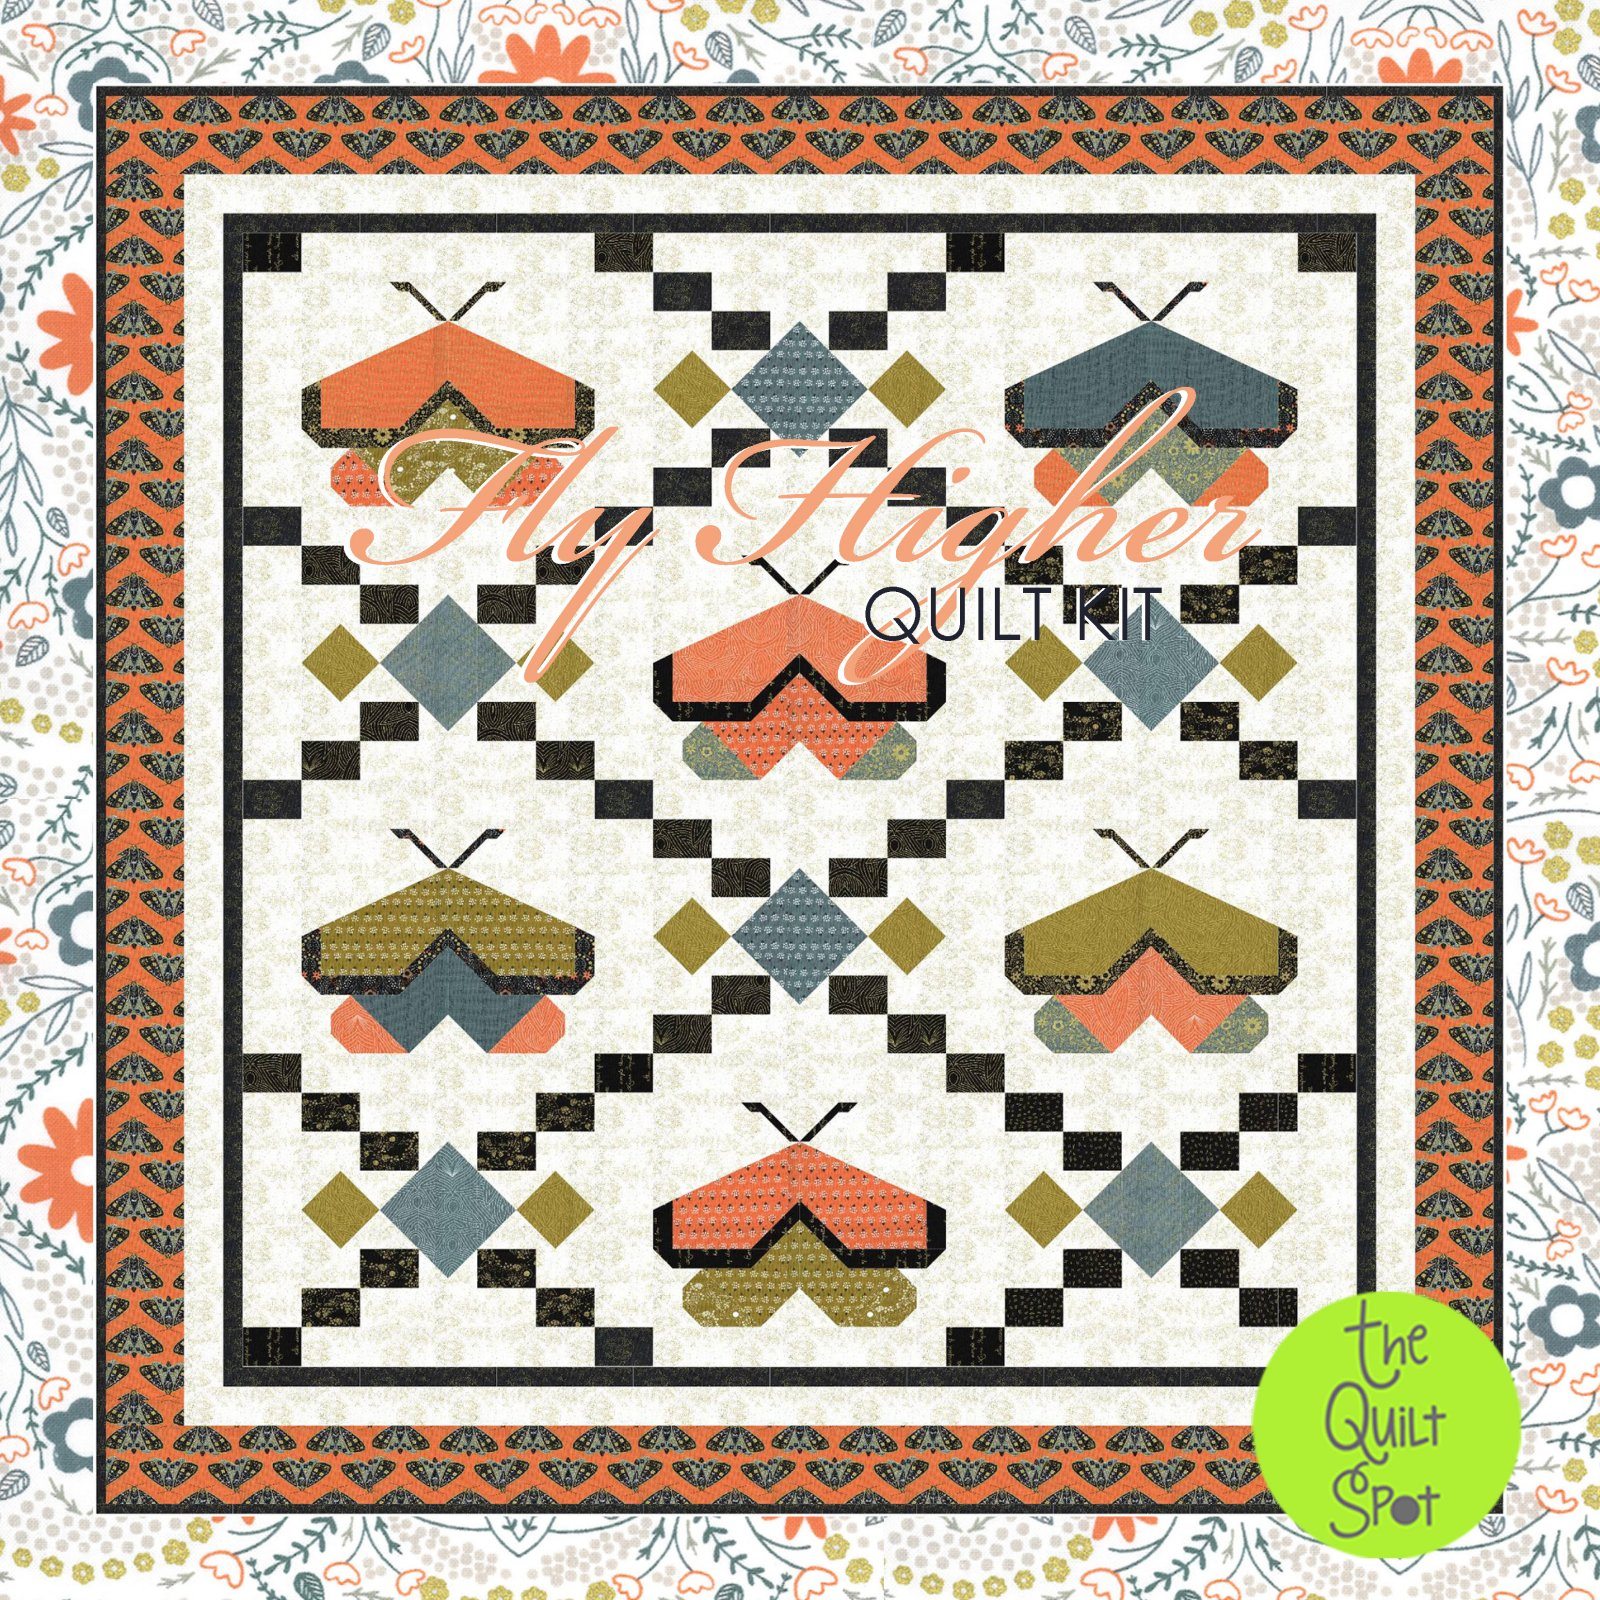 Fly Higher Quilt Kit featuring Dwell in the Possibilities by Gingiber